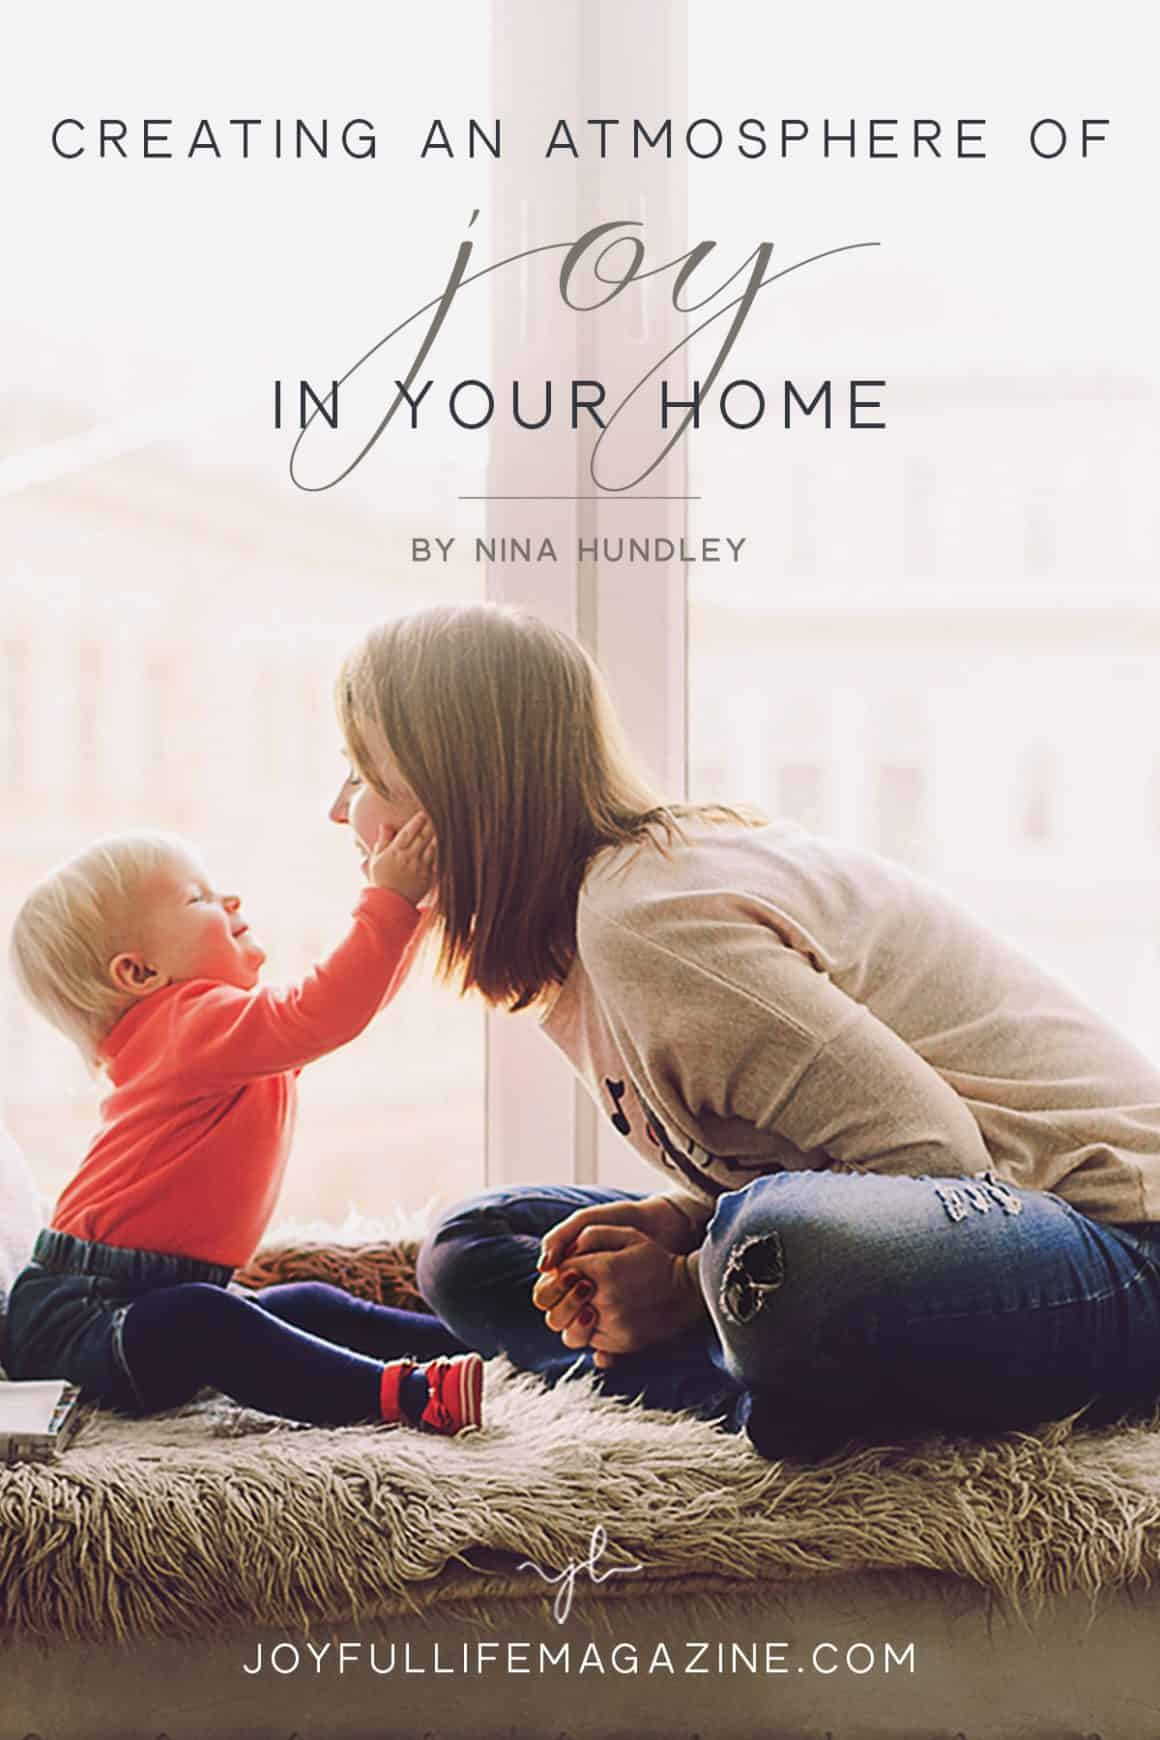 Creating an Atmosphere of Joy in Your Home | by Nina Hundley | The Joyful Life Magazine